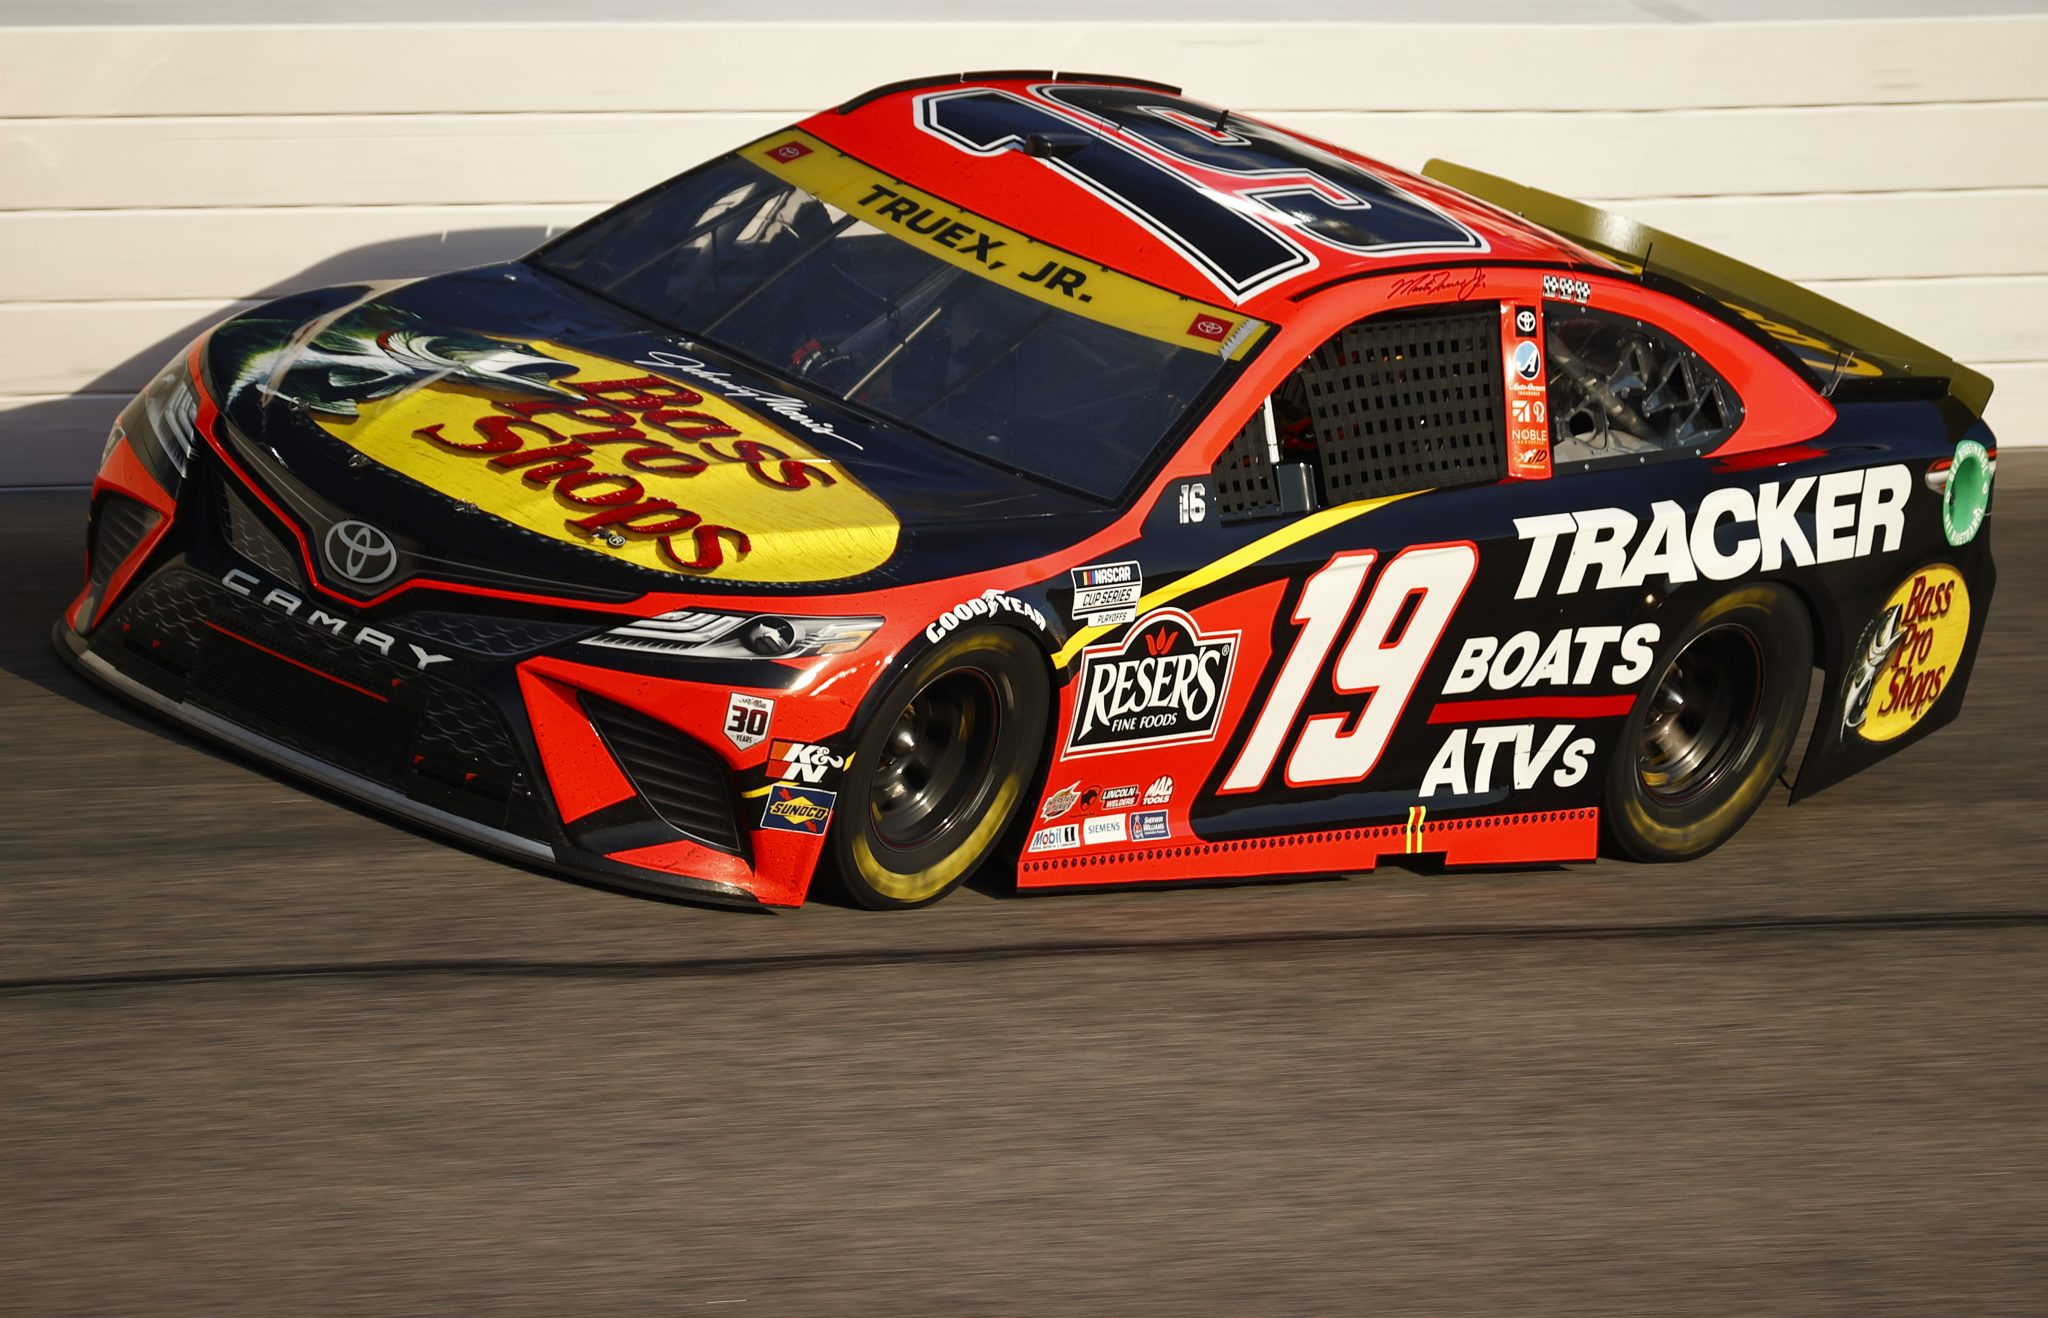 DARLINGTON, SOUTH CAROLINA - SEPTEMBER 05: Martin Truex Jr., driver of the #19 Bass Pro Toyota, drives during the NASCAR Cup Series Cook Out Southern 500 at Darlington Raceway on September 05, 2021 in Darlington, South Carolina. (Photo by Jared C. Tilton/Getty Images) | Getty Images